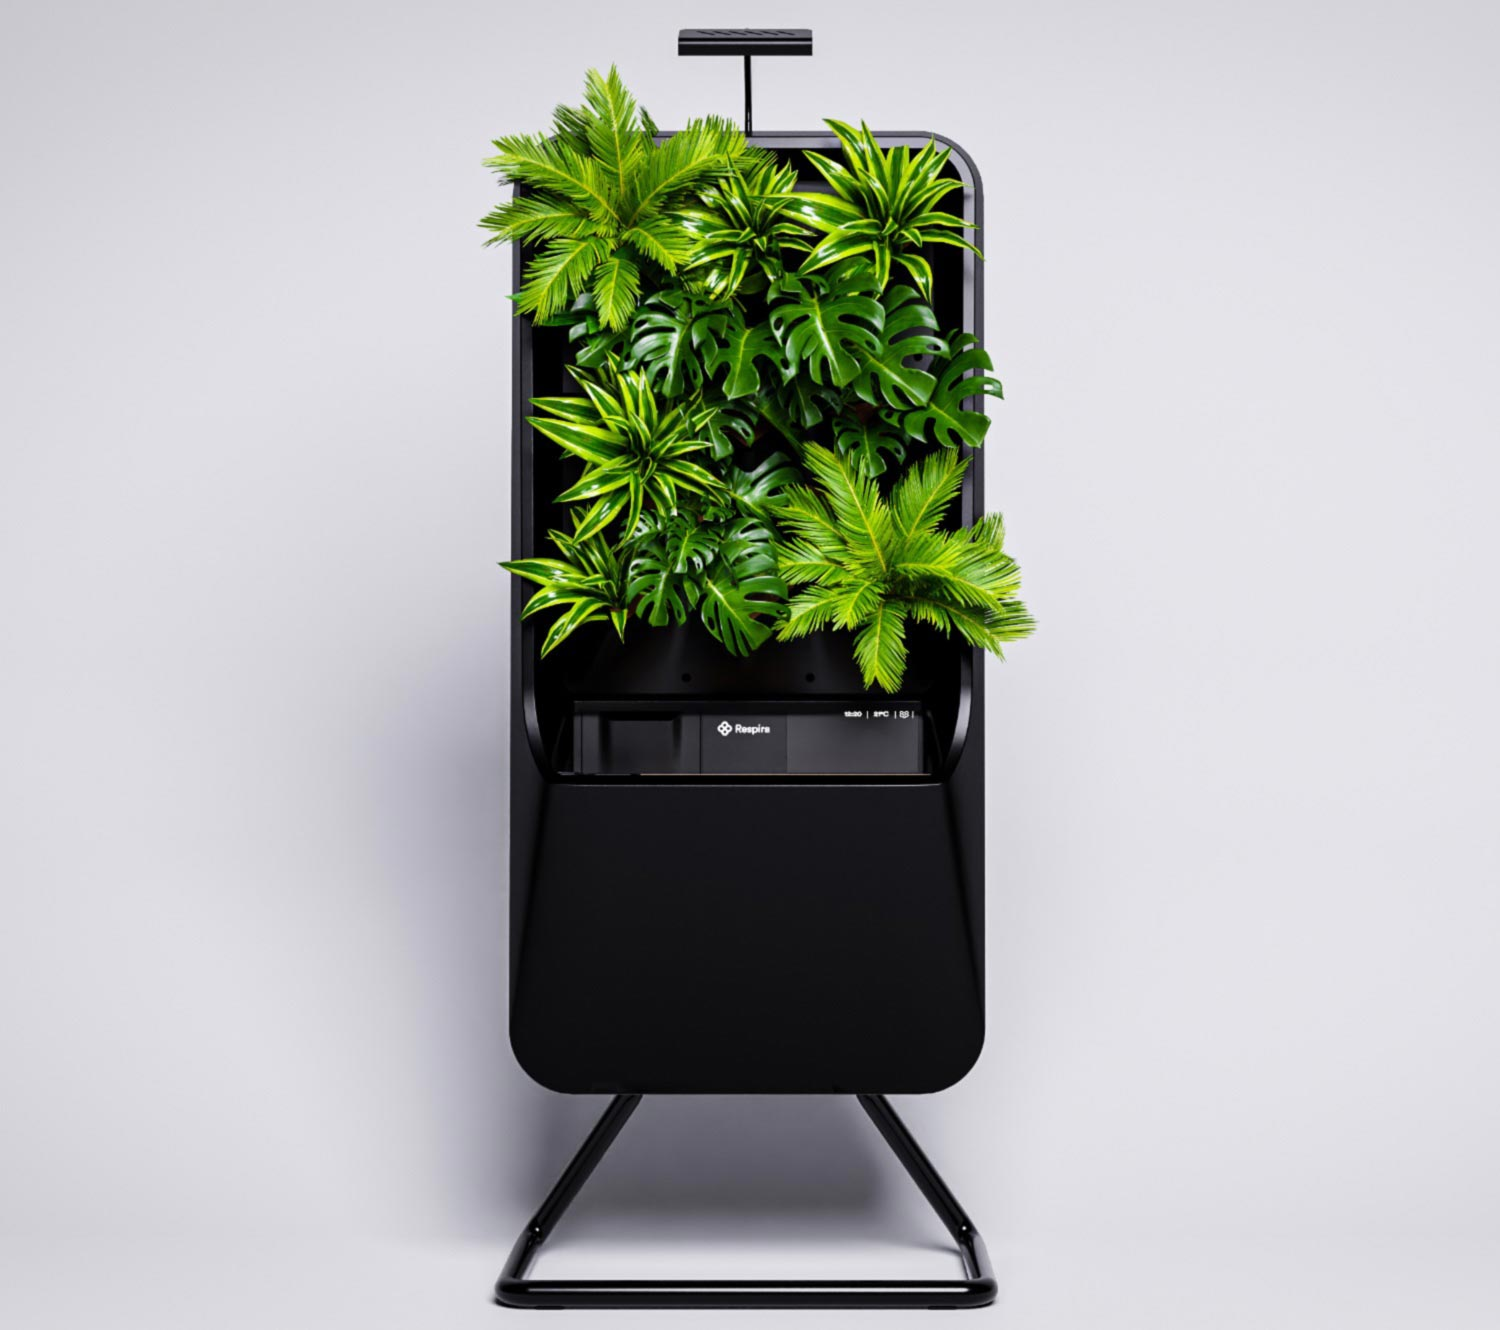 Black respira unit with tropical plant palette on stainless steel stand. light grey gradient background